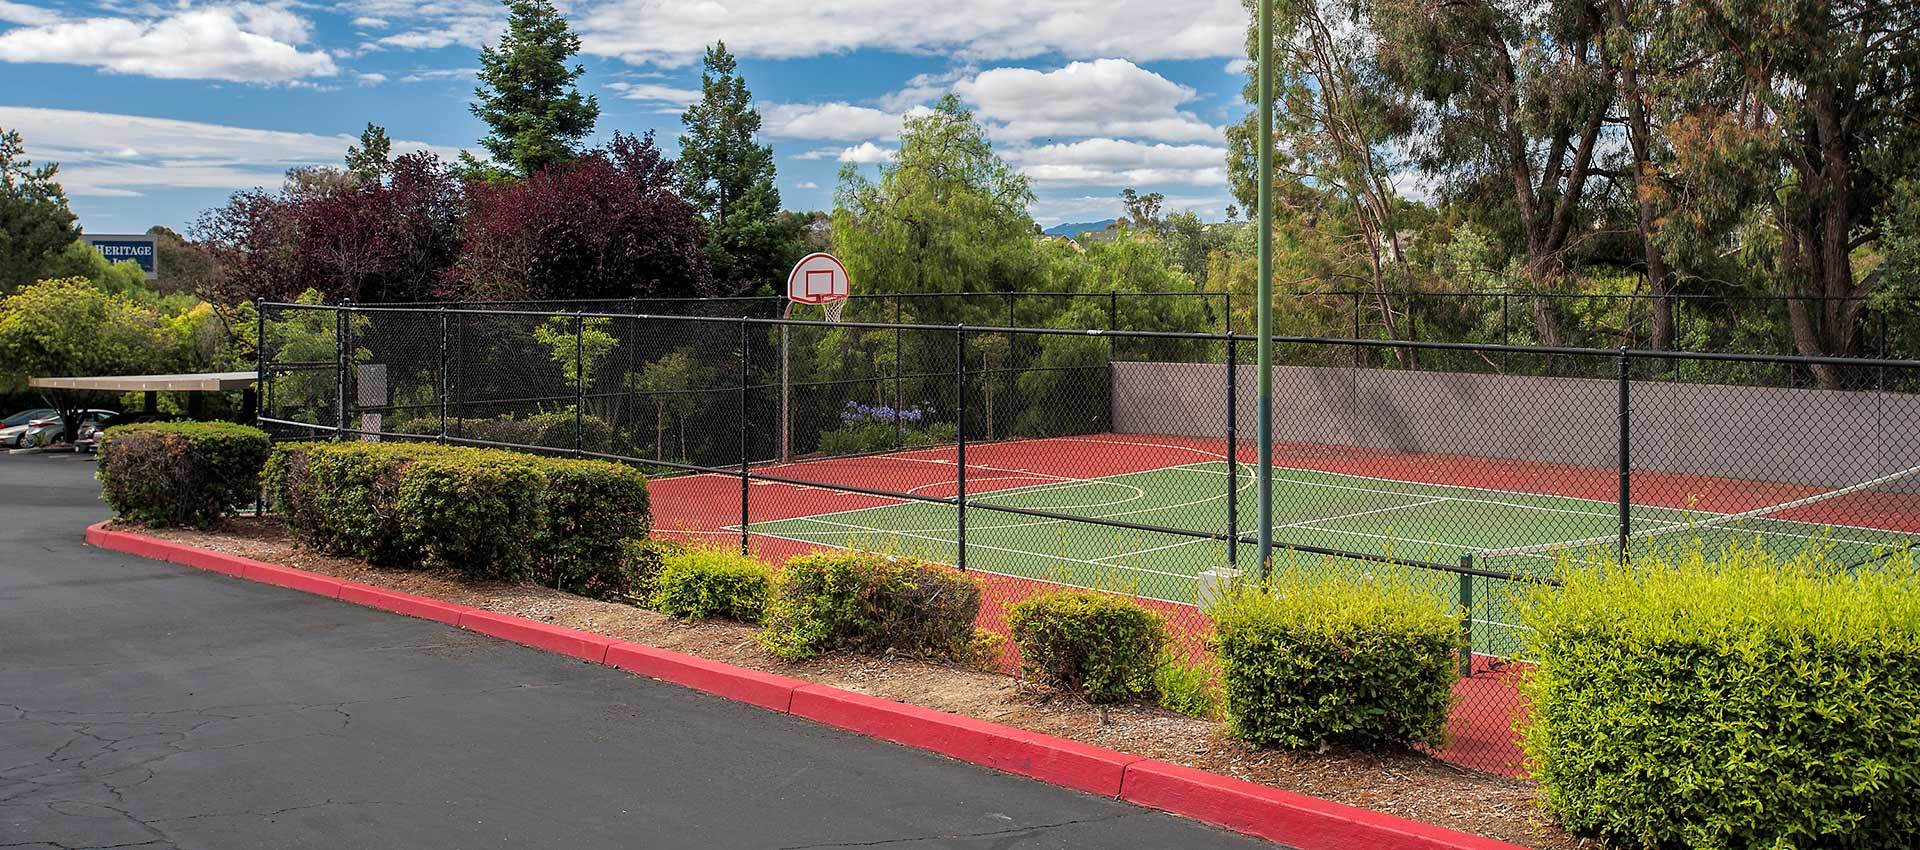 Sport Court at Sterling Heights Apartment Homes in Benicia, California